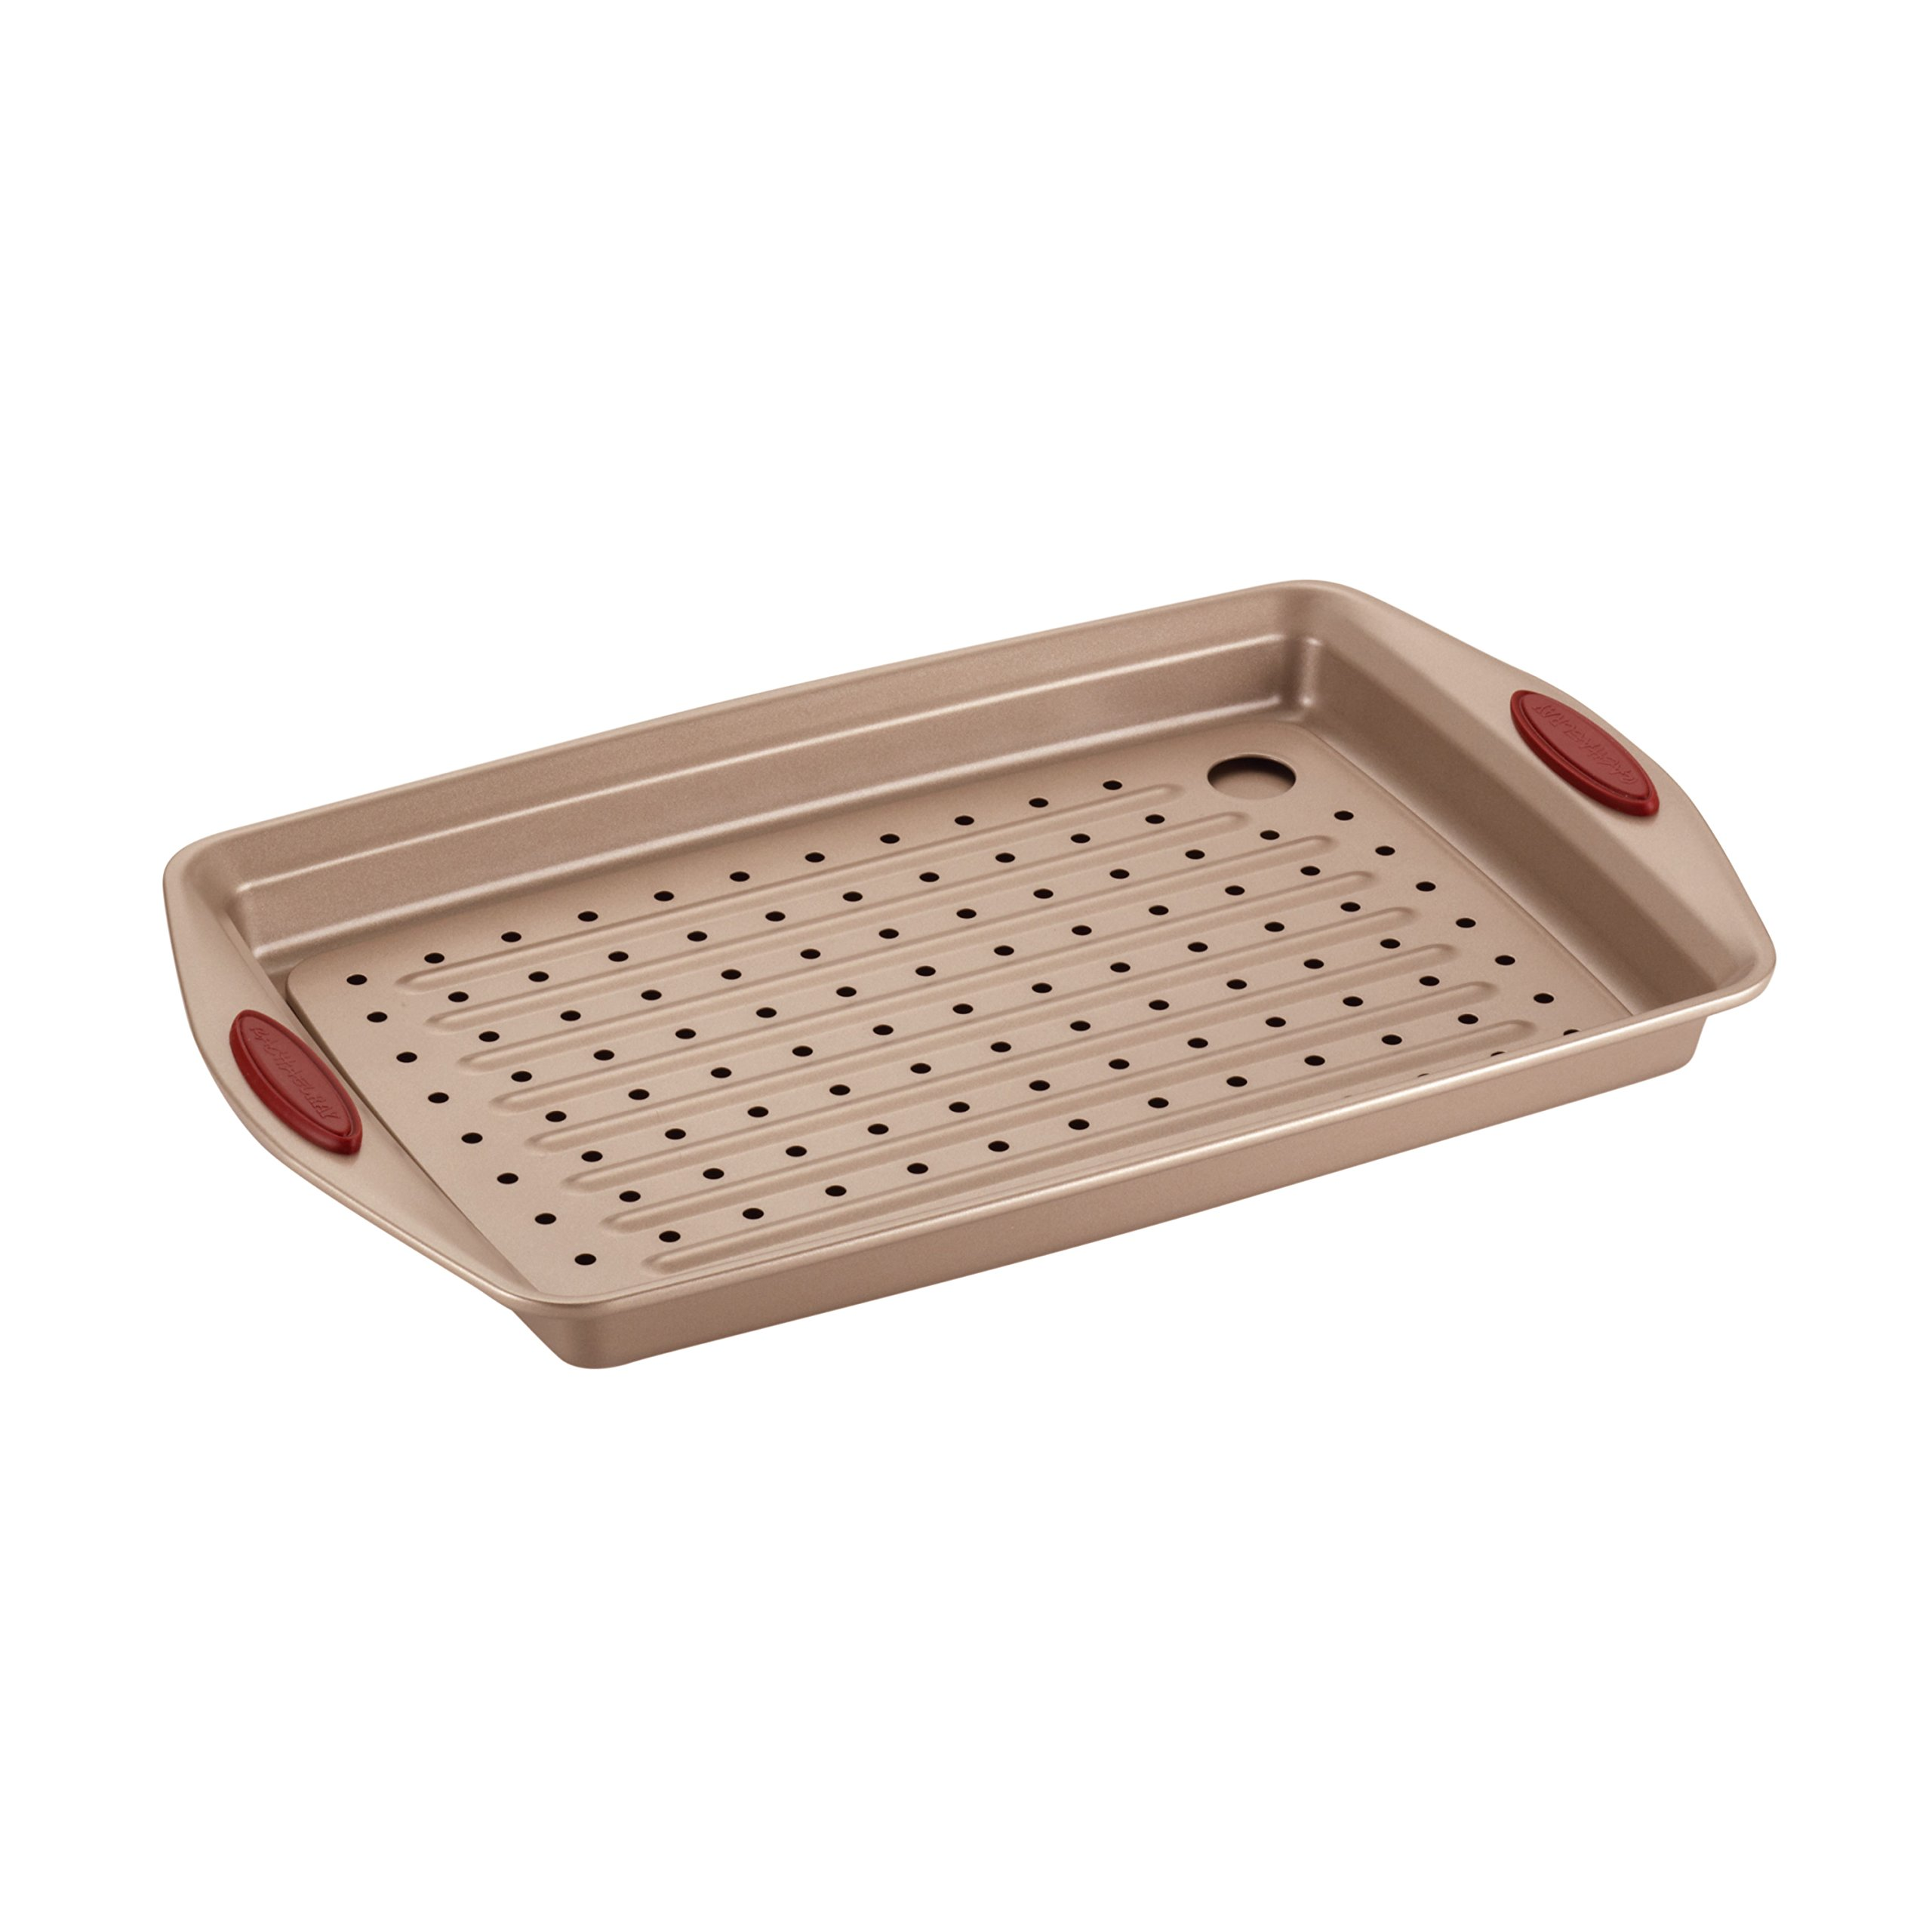 Rachael Ray 2 Piece Cucina Nonstick Bakeware Crisper Pan Set, Latte Brown with Cranberry Red Handle Grips